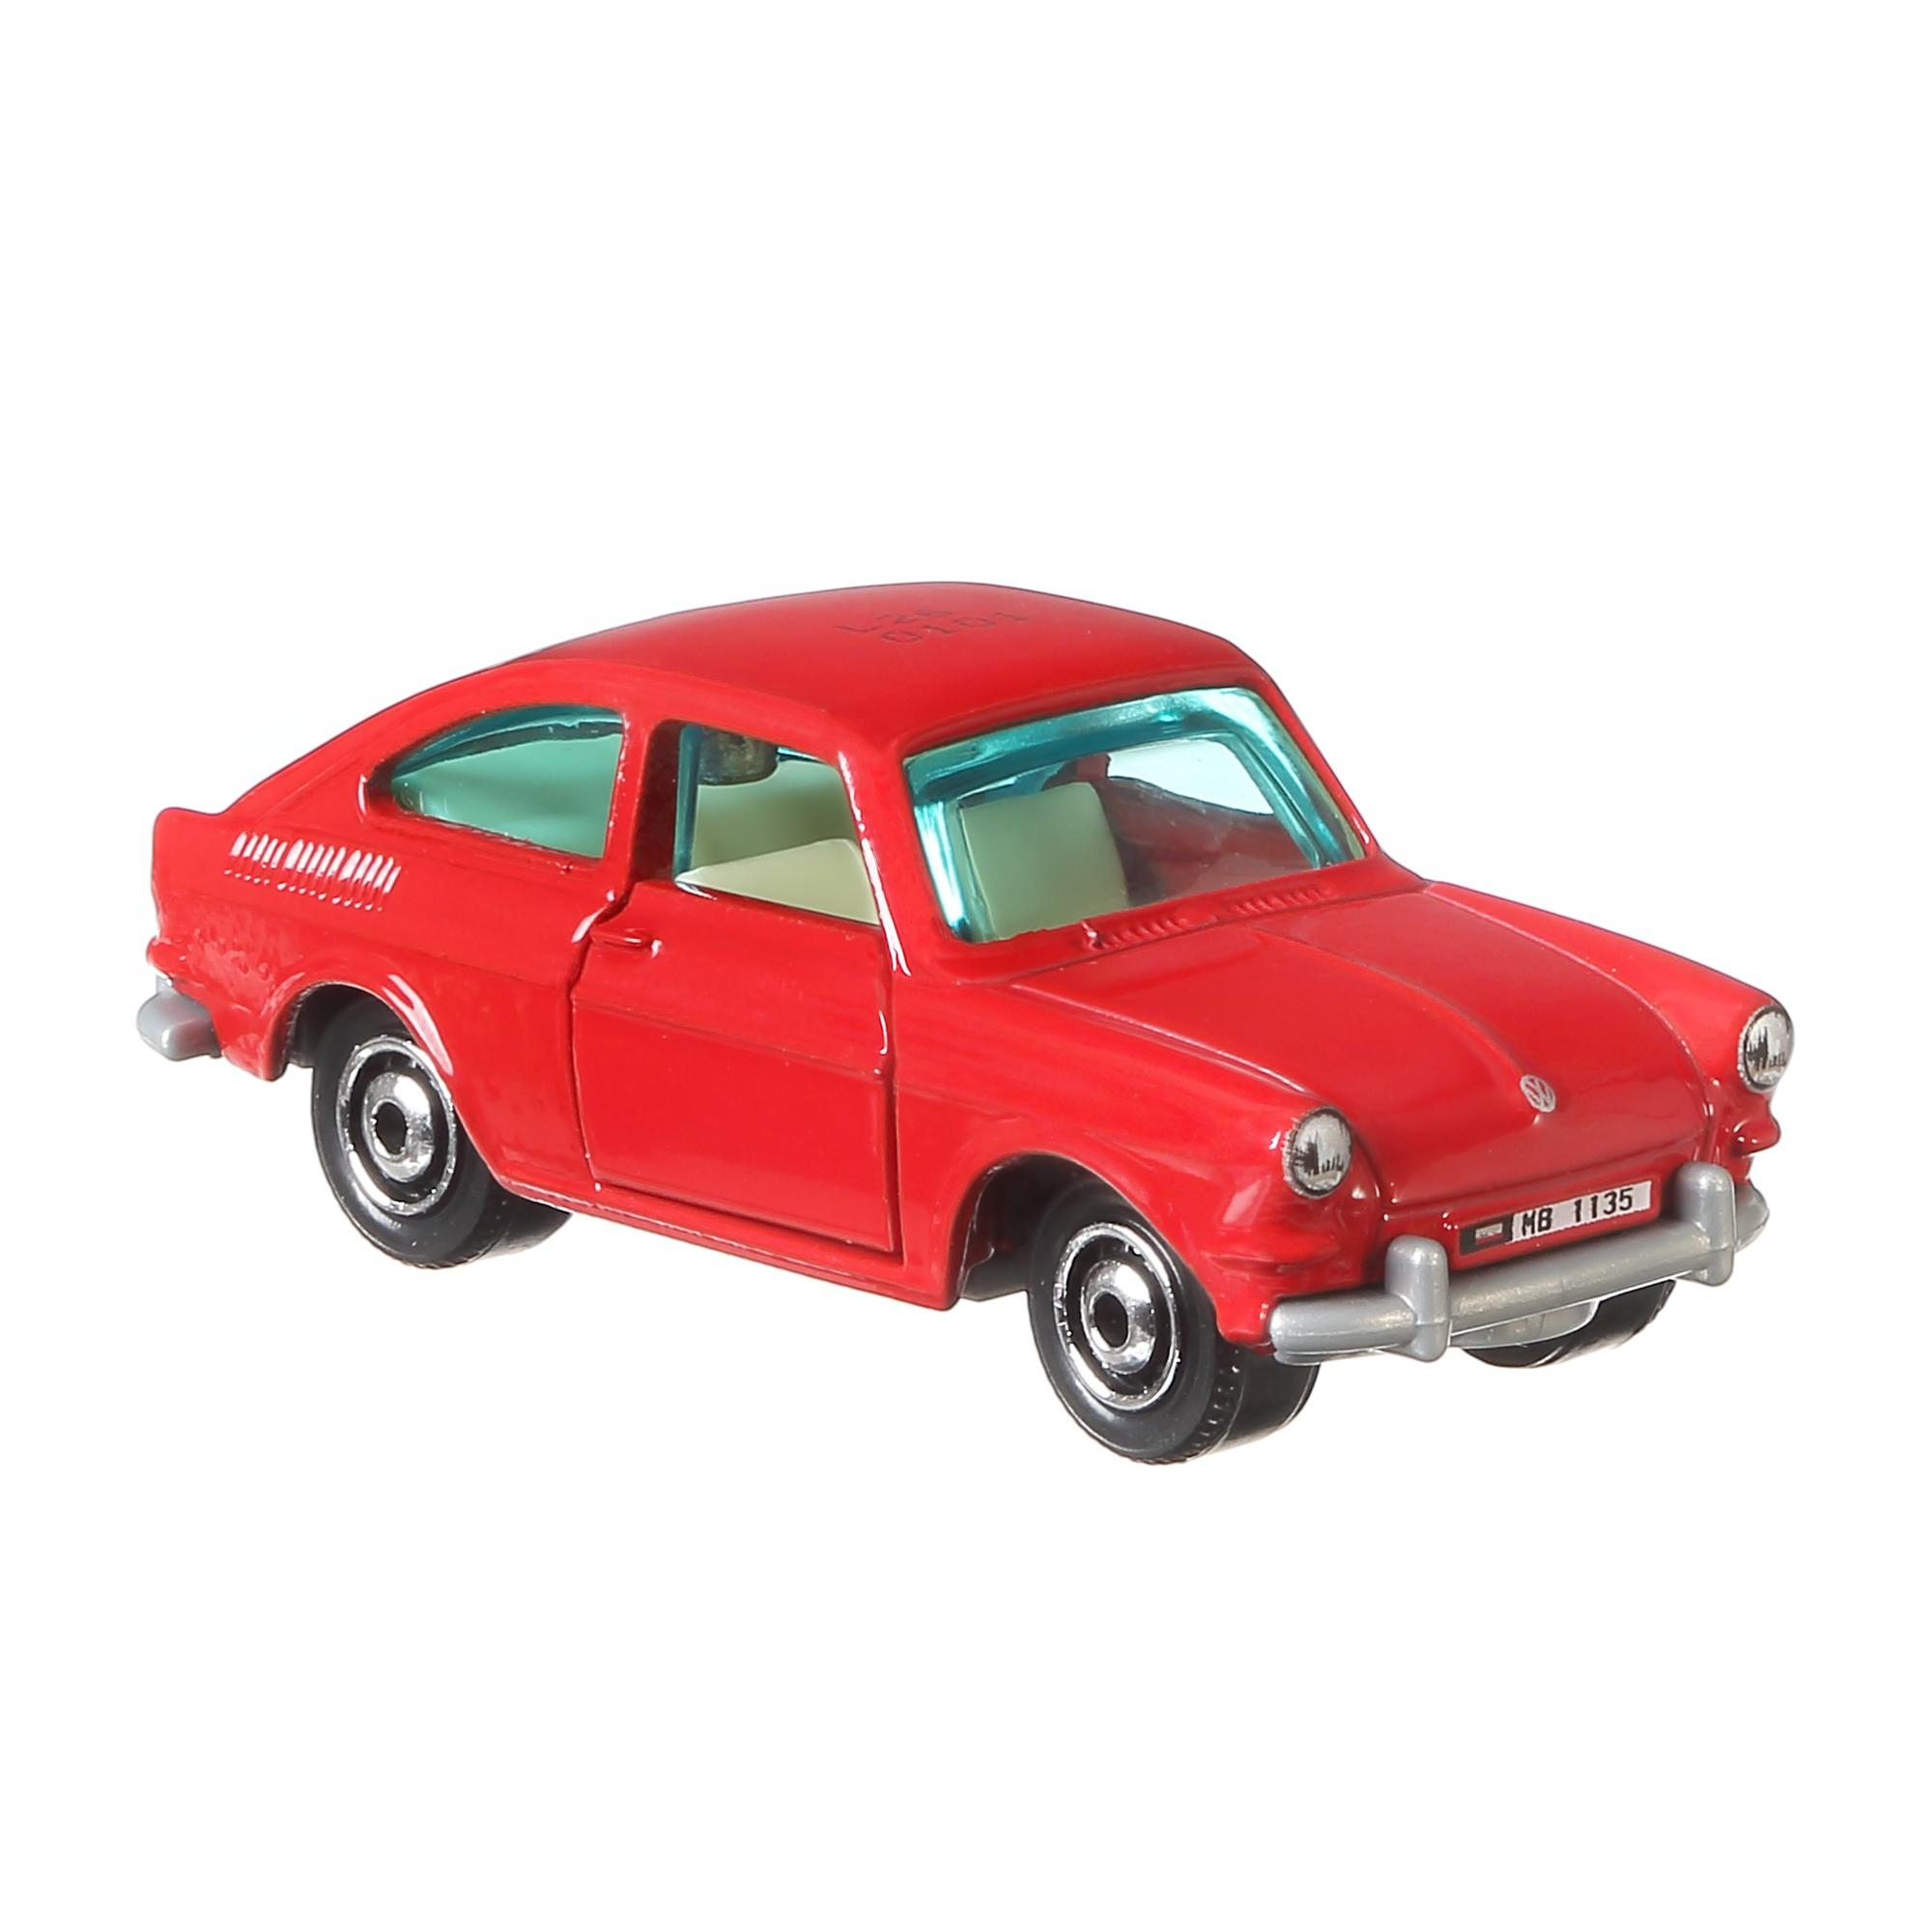 Matchbox Classic Vehicle Singles (Styles May Vary)